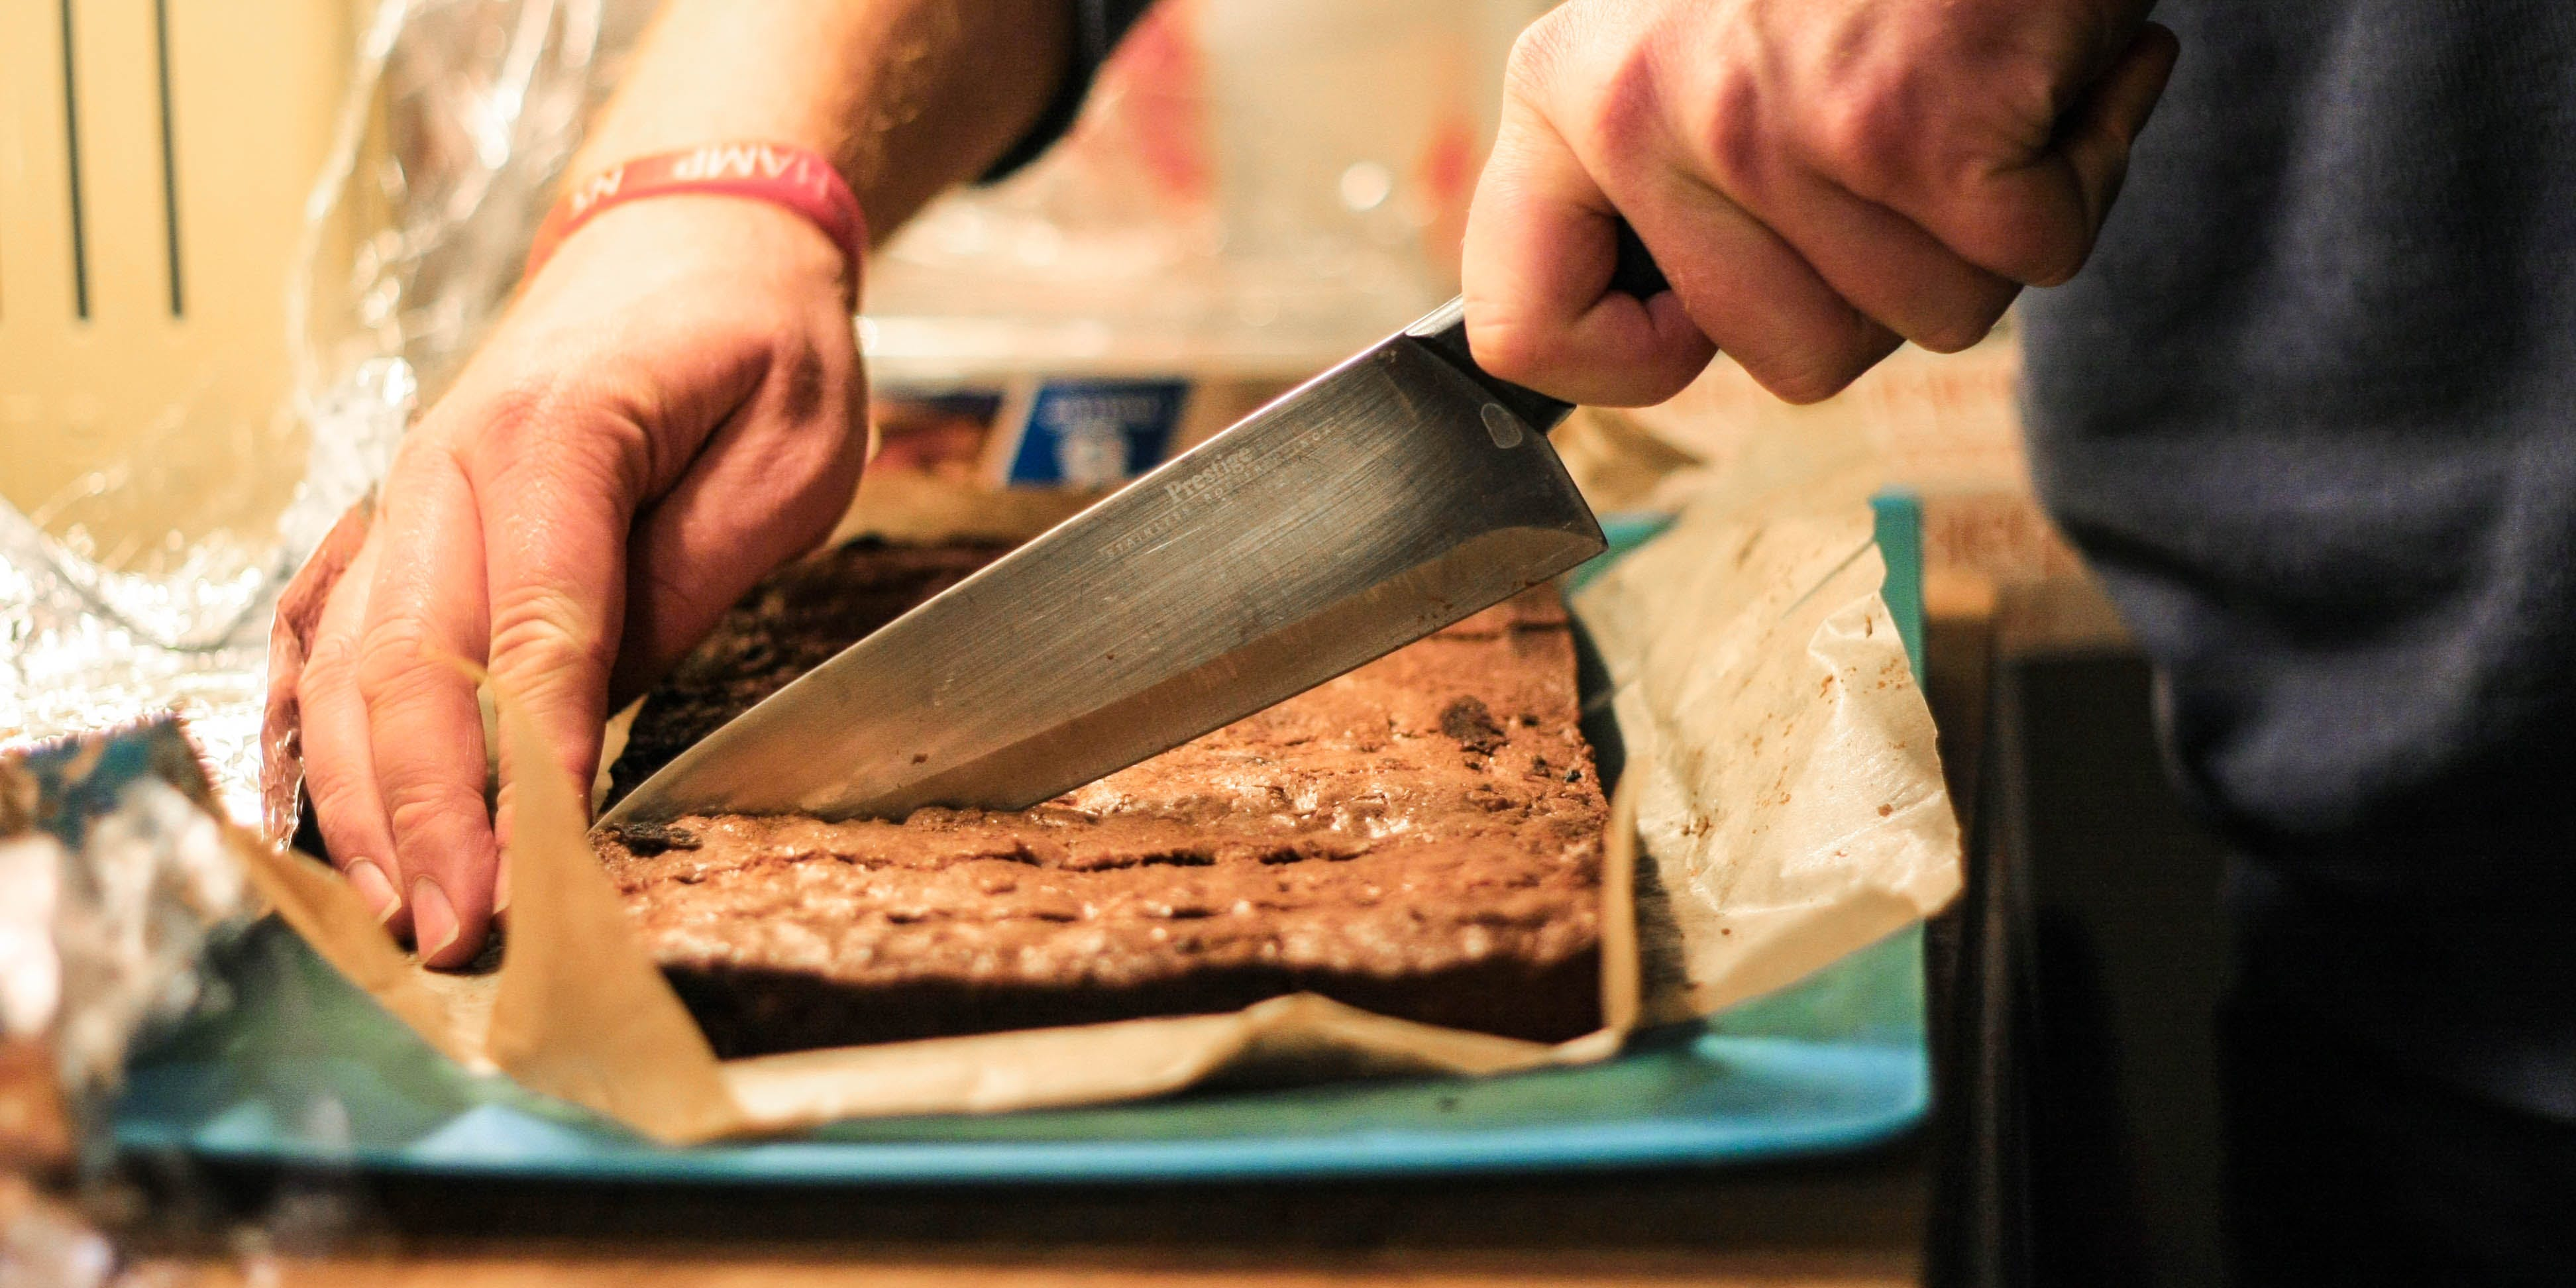 The Top 5 Mistakes People Make When Baking Edibles For The First Time